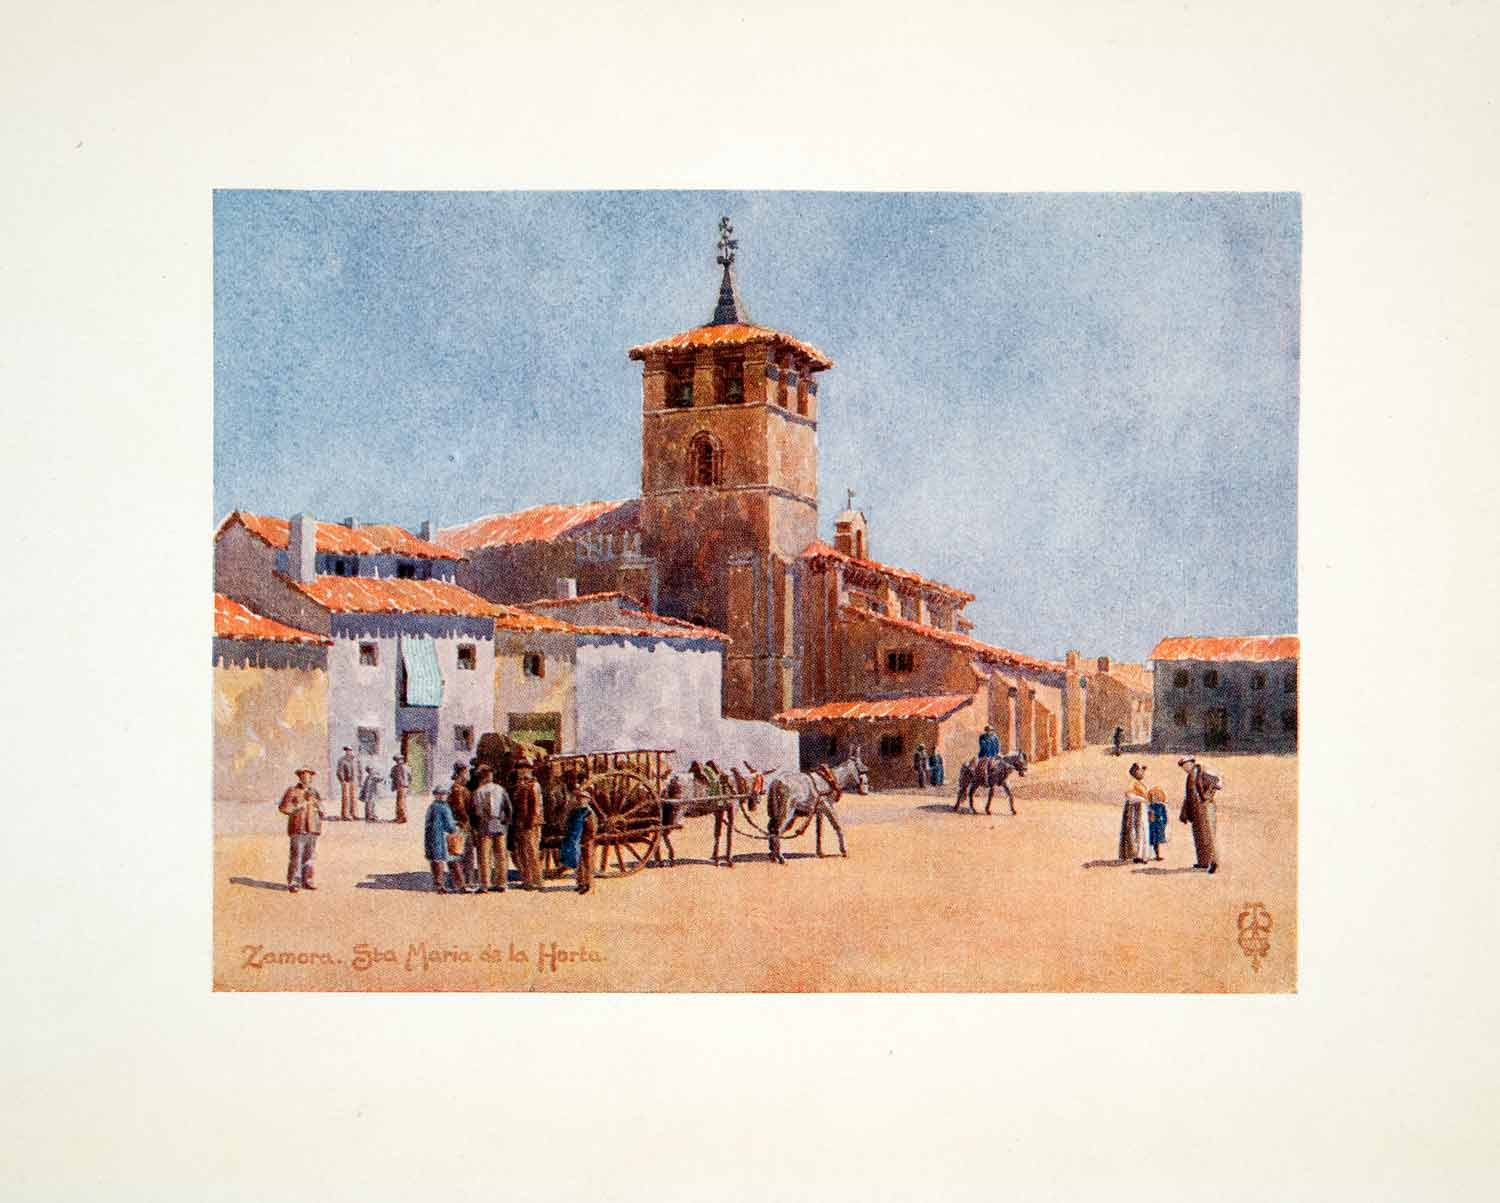 1906 Color Print Wigram Zamora Castile Leon Spain Church Santa Maria Horta XGJB3